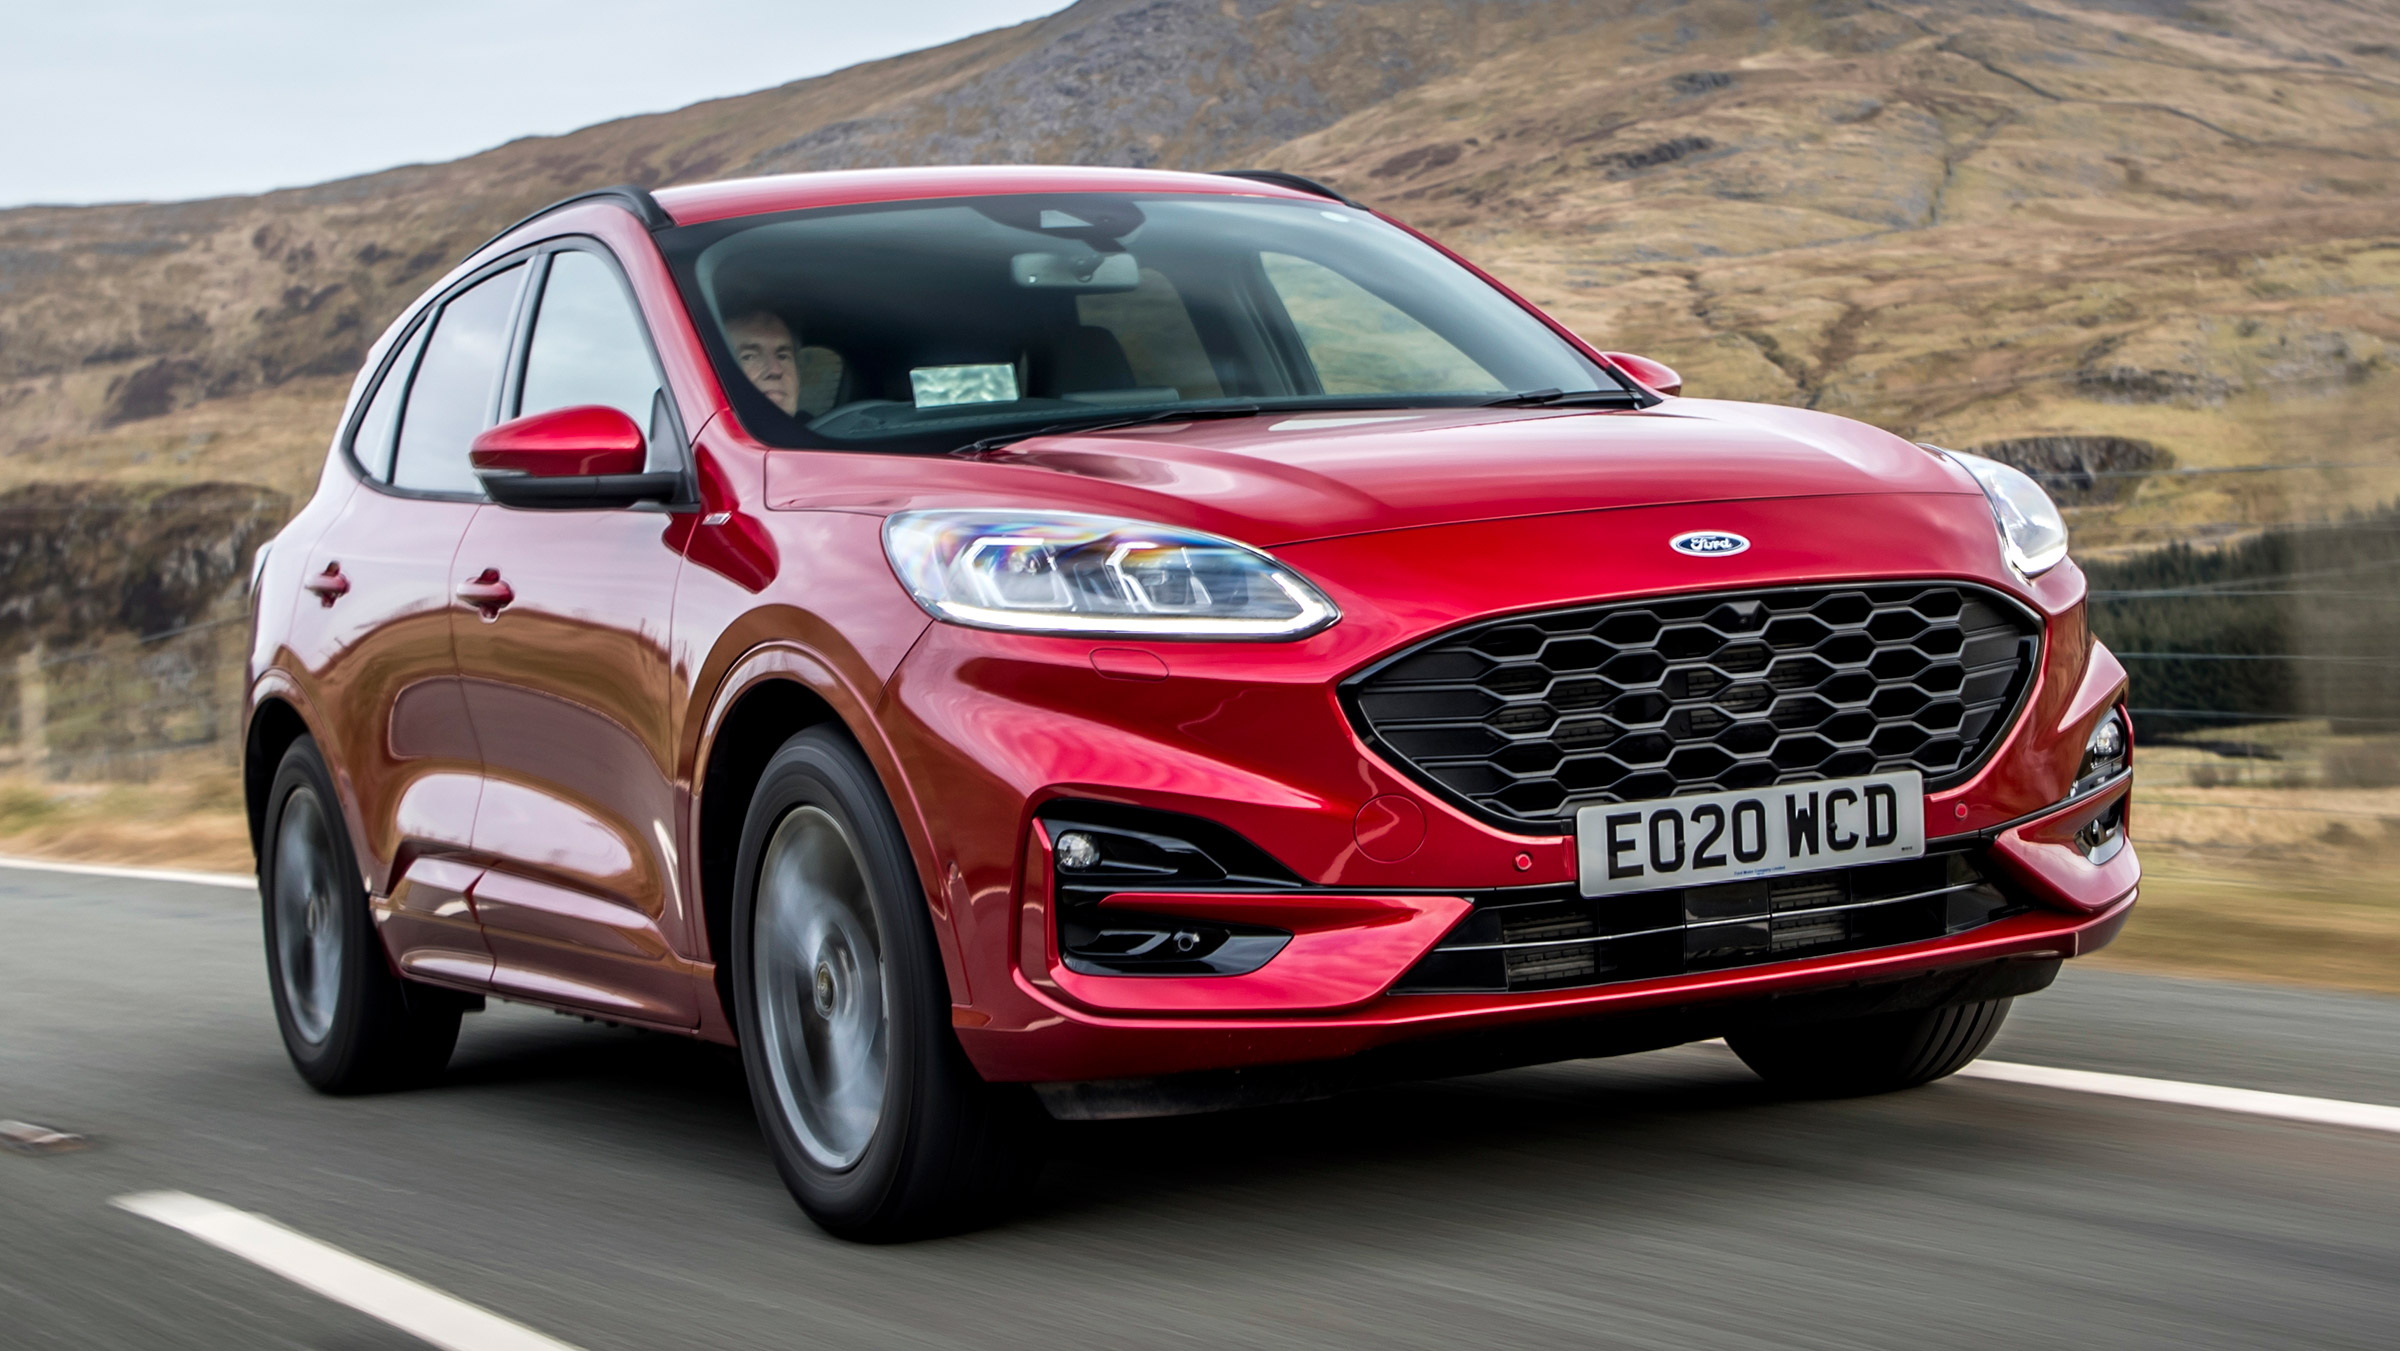 Ford Kuga Plug In Hybrid Suv 2020 Review Carbuyer